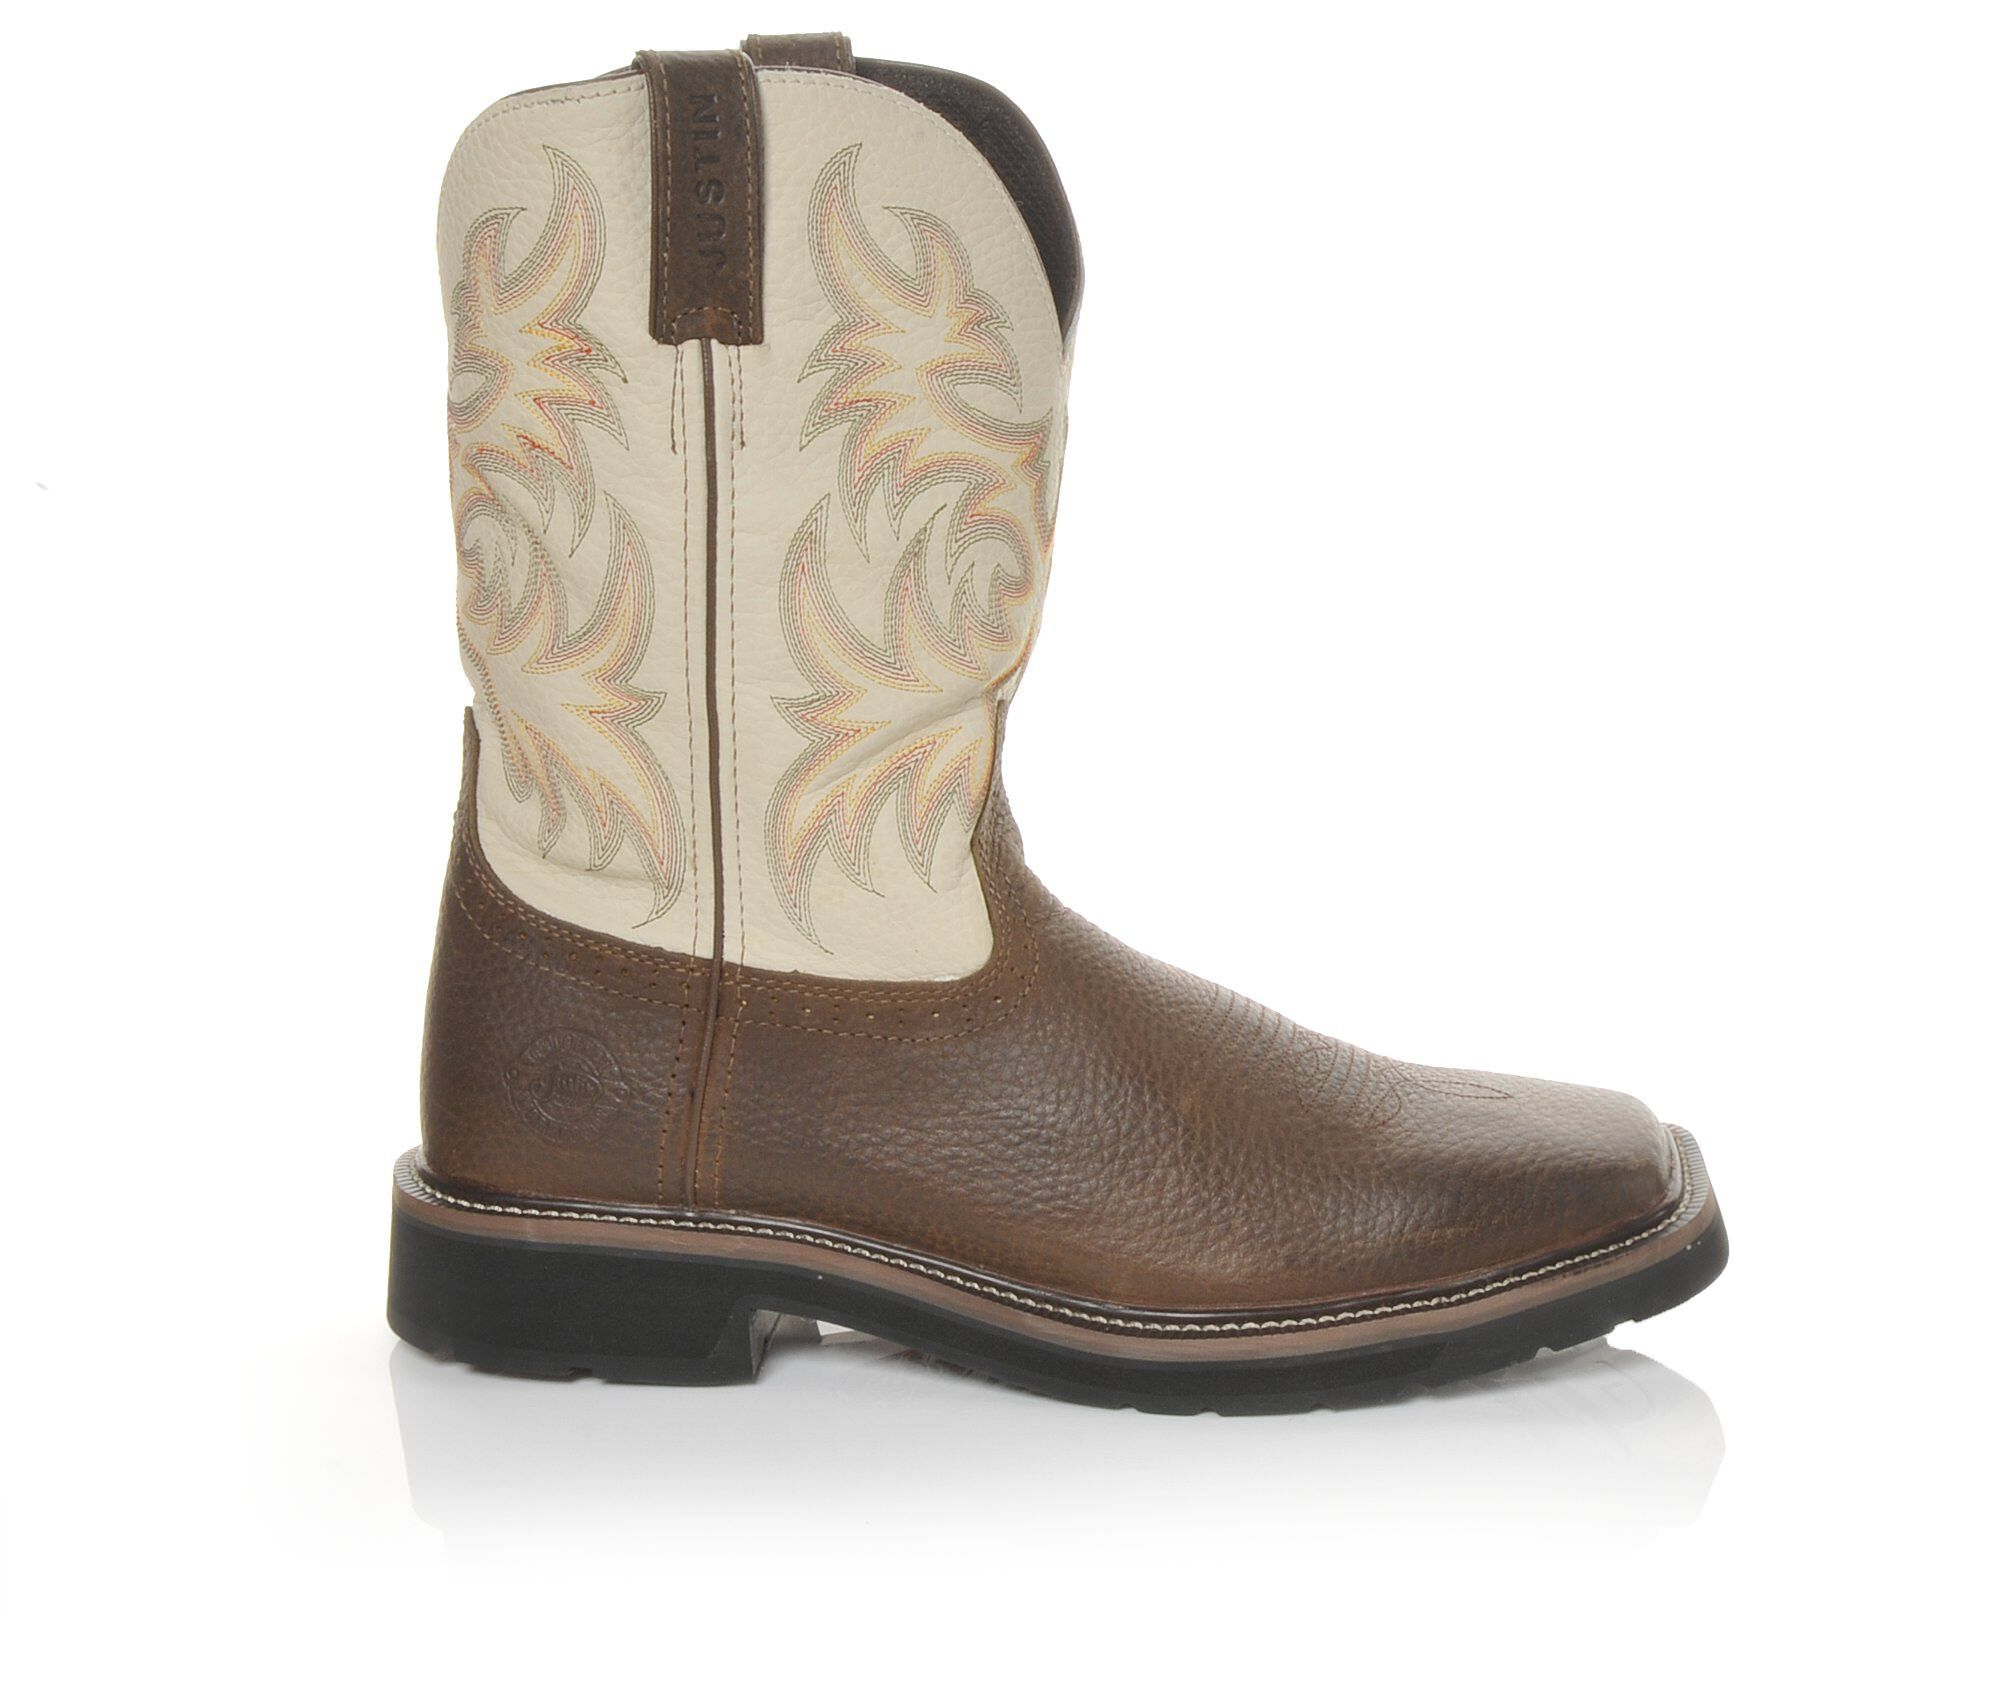 Men's Justin Boots WK 4683 Stampede 11 In Work Boots Brown/Cream